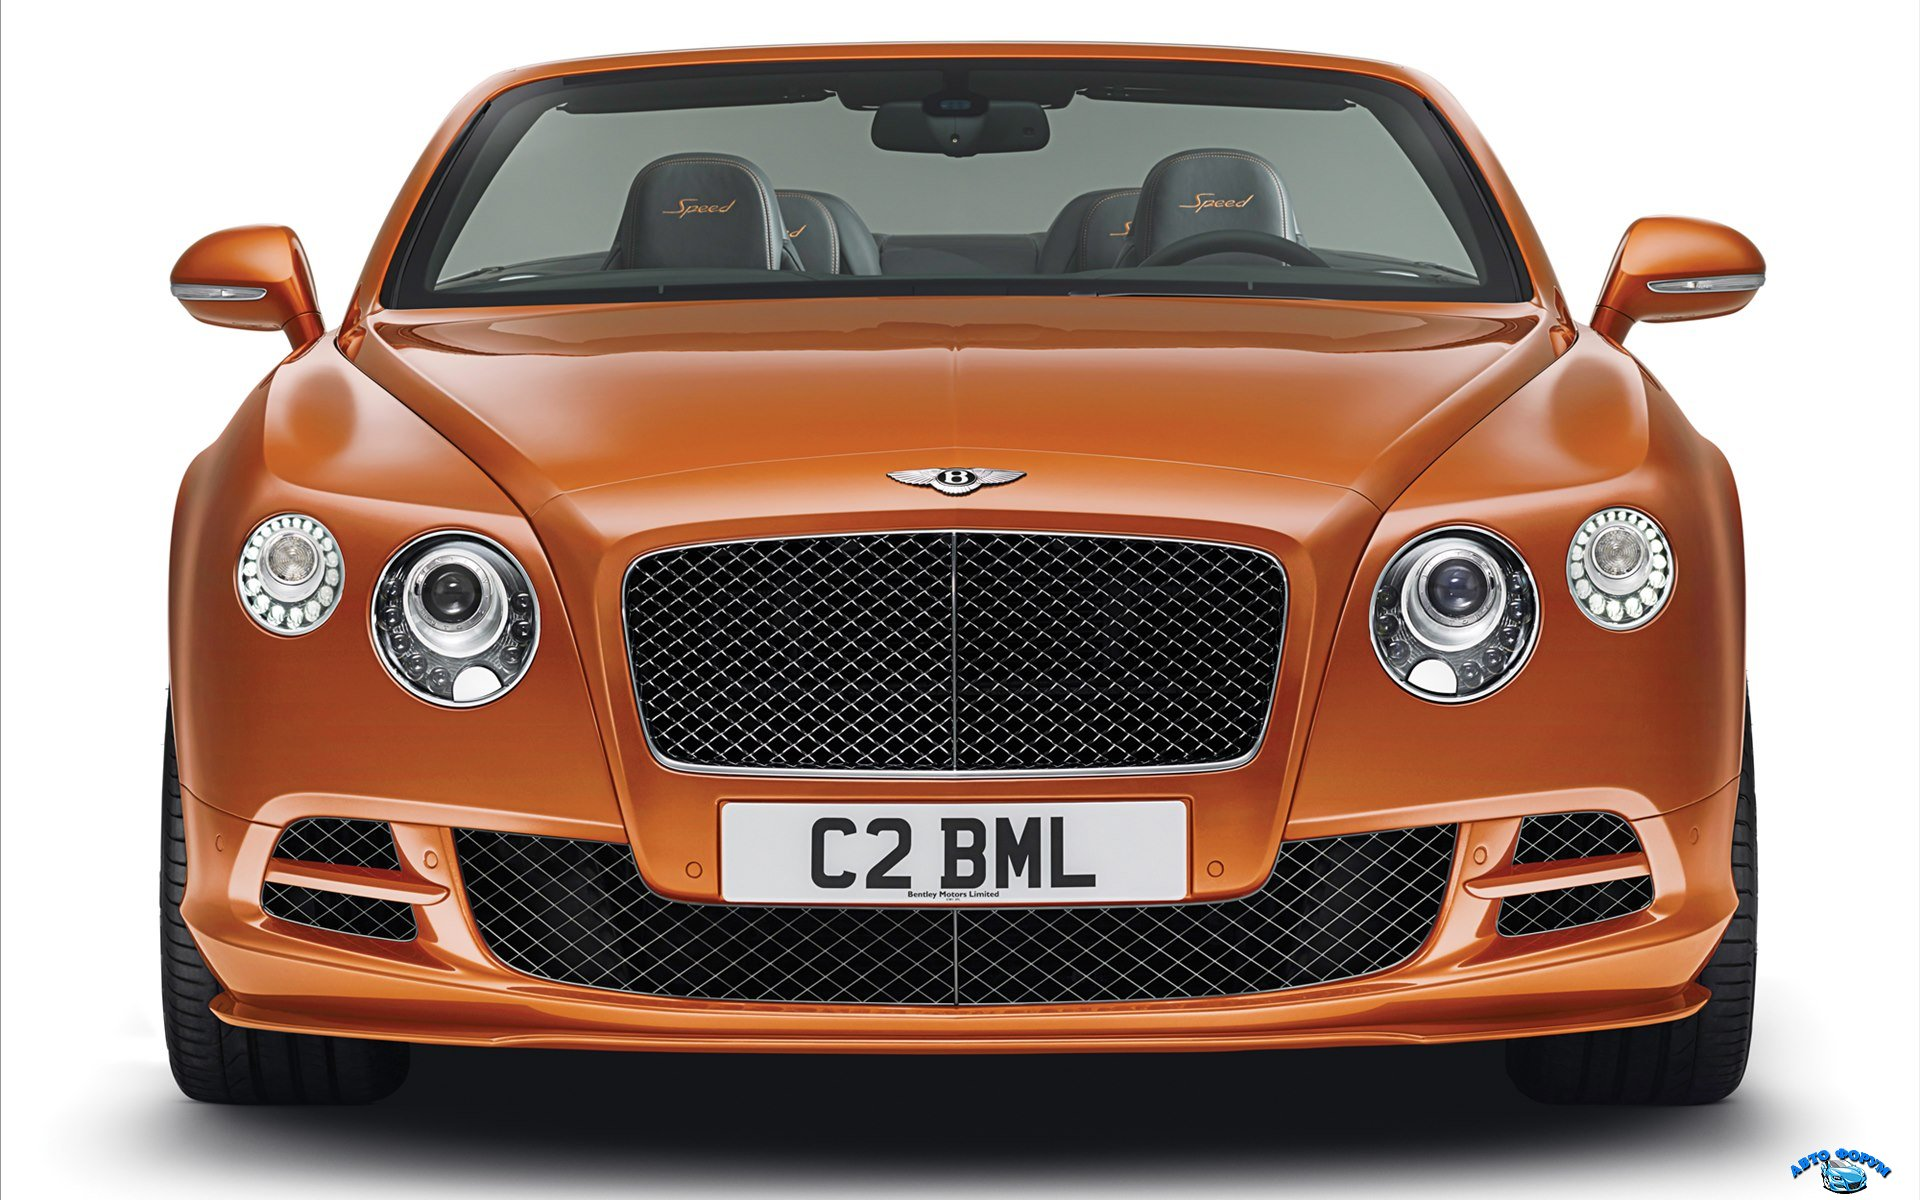 Bentley-Continental-GT-Speed-Convertible-2015-widescreen-02.jpg